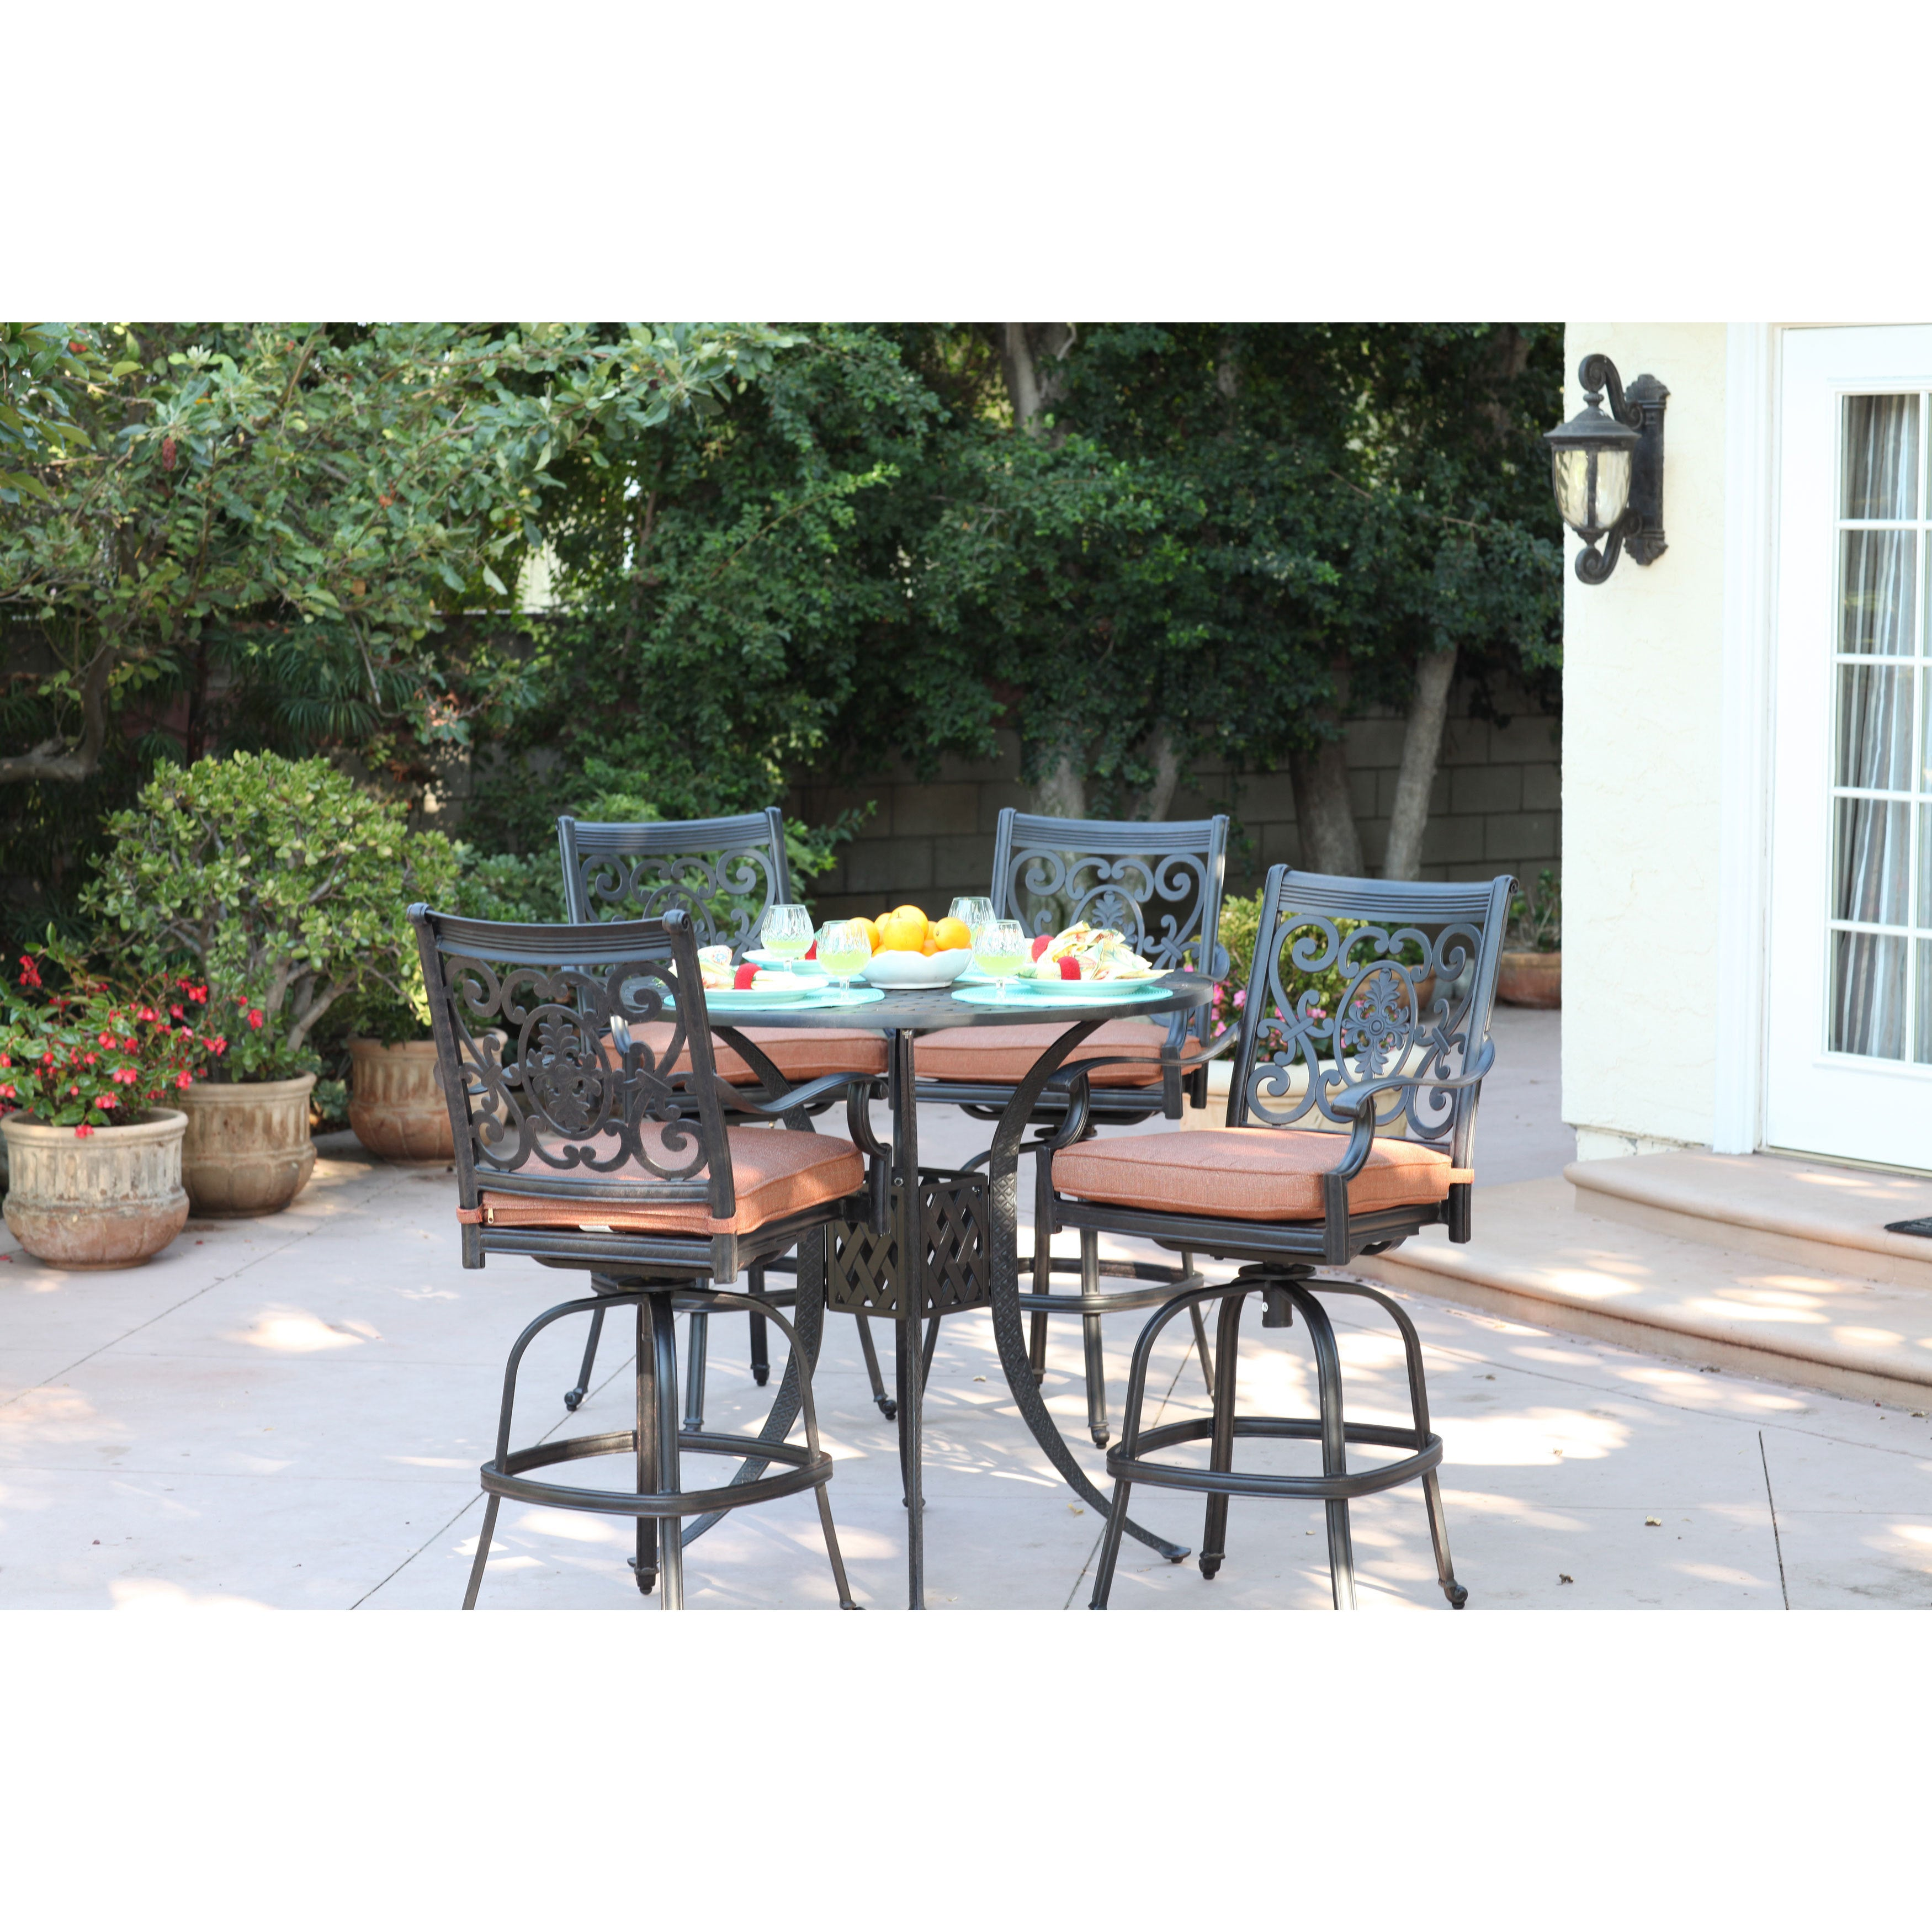 Darlee St. Cruz Antique Bronze Finish Cast Aluminum 5-piece Bar Set Spicy Chili Seat Cushions and 42-inch Round Bar Table - Free Shipping Today ...  sc 1 st  Overstock & Darlee St. Cruz Antique Bronze Finish Cast Aluminum 5-piece Bar Set ...